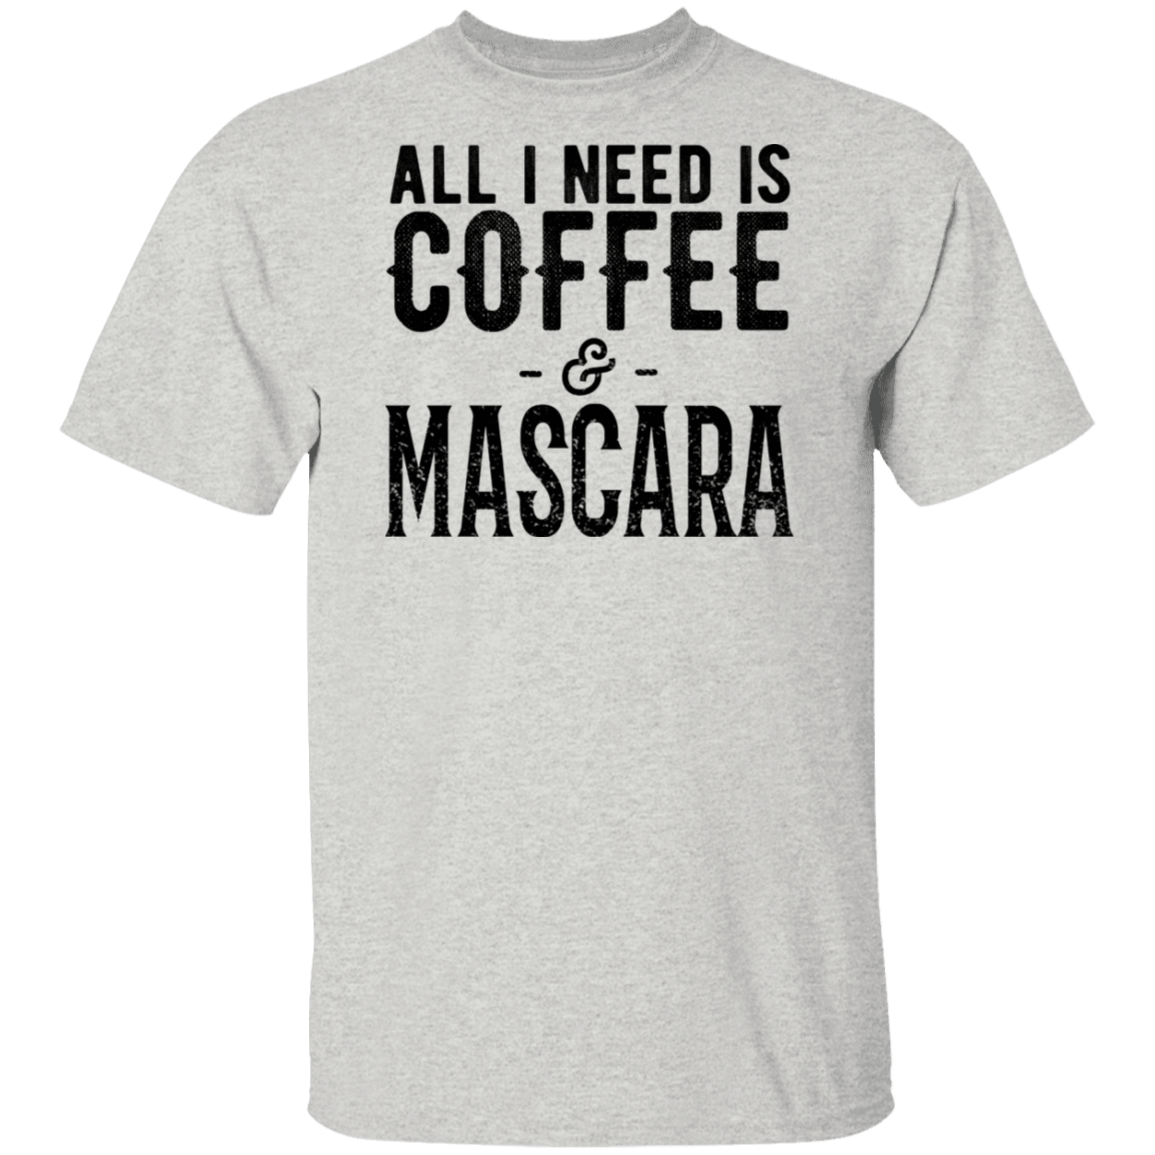 All I Need Is Coffee And Mascara T-Shirts, Hoodies, Tank 1049-9952-80779105-48184 - Tee Ript